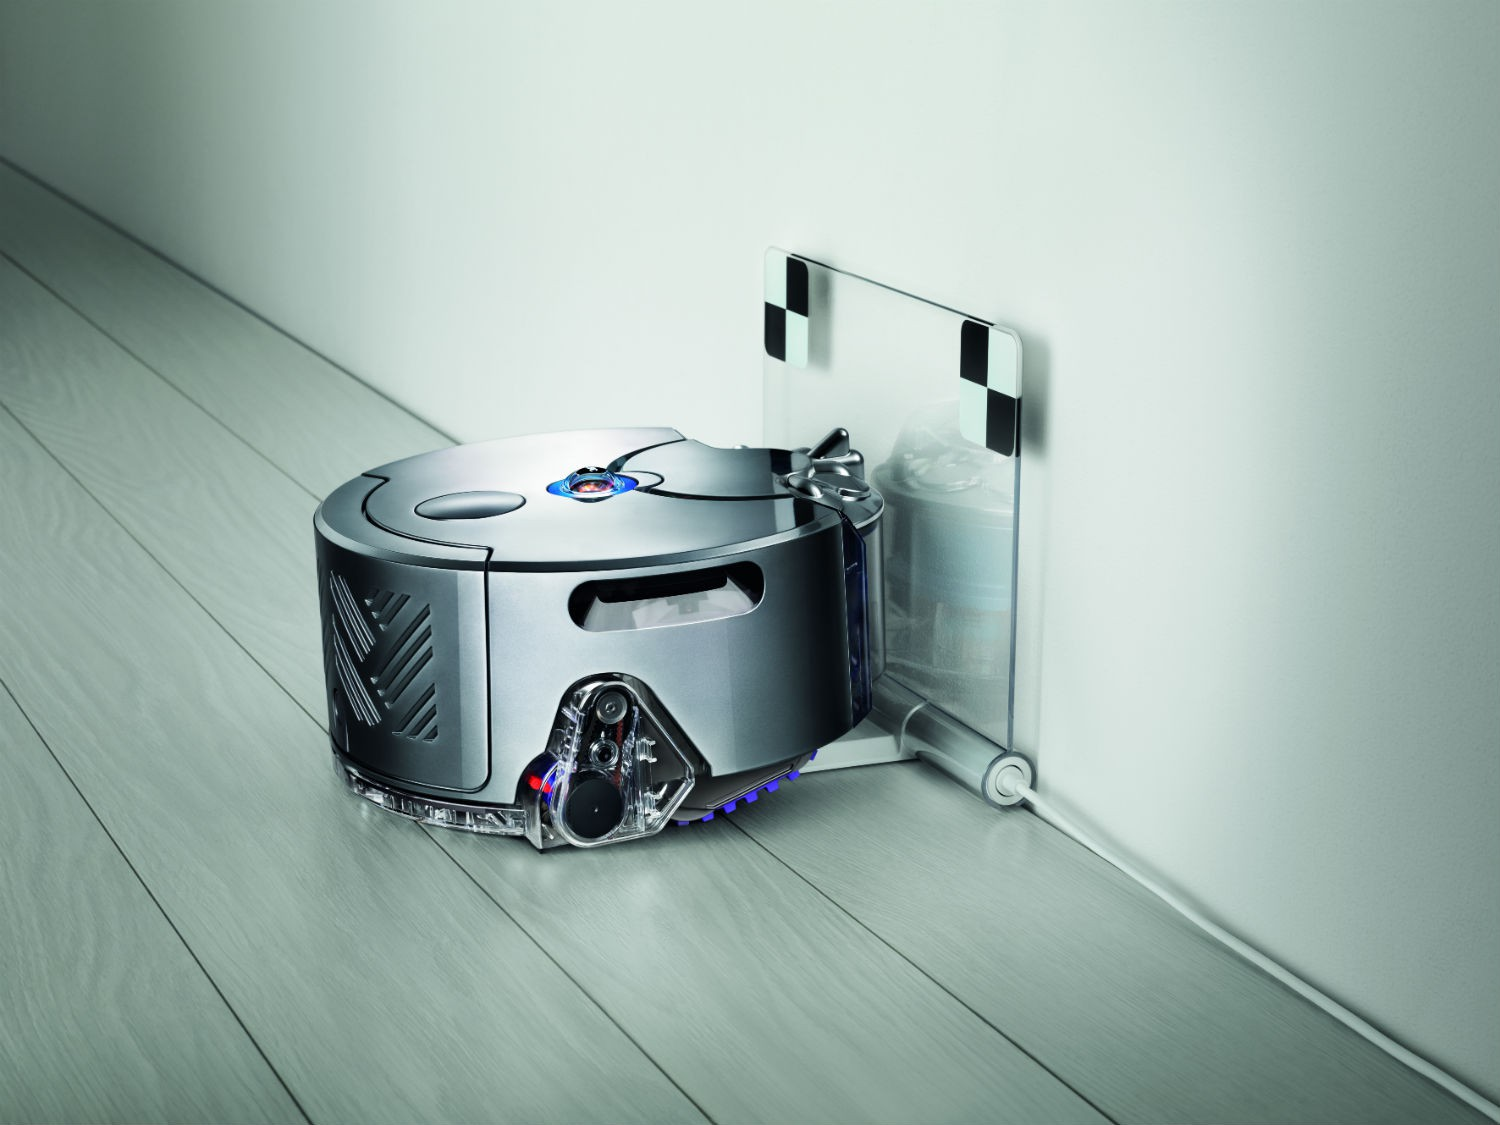 dyson 360 eye test complet aspirateur robot les num riques. Black Bedroom Furniture Sets. Home Design Ideas